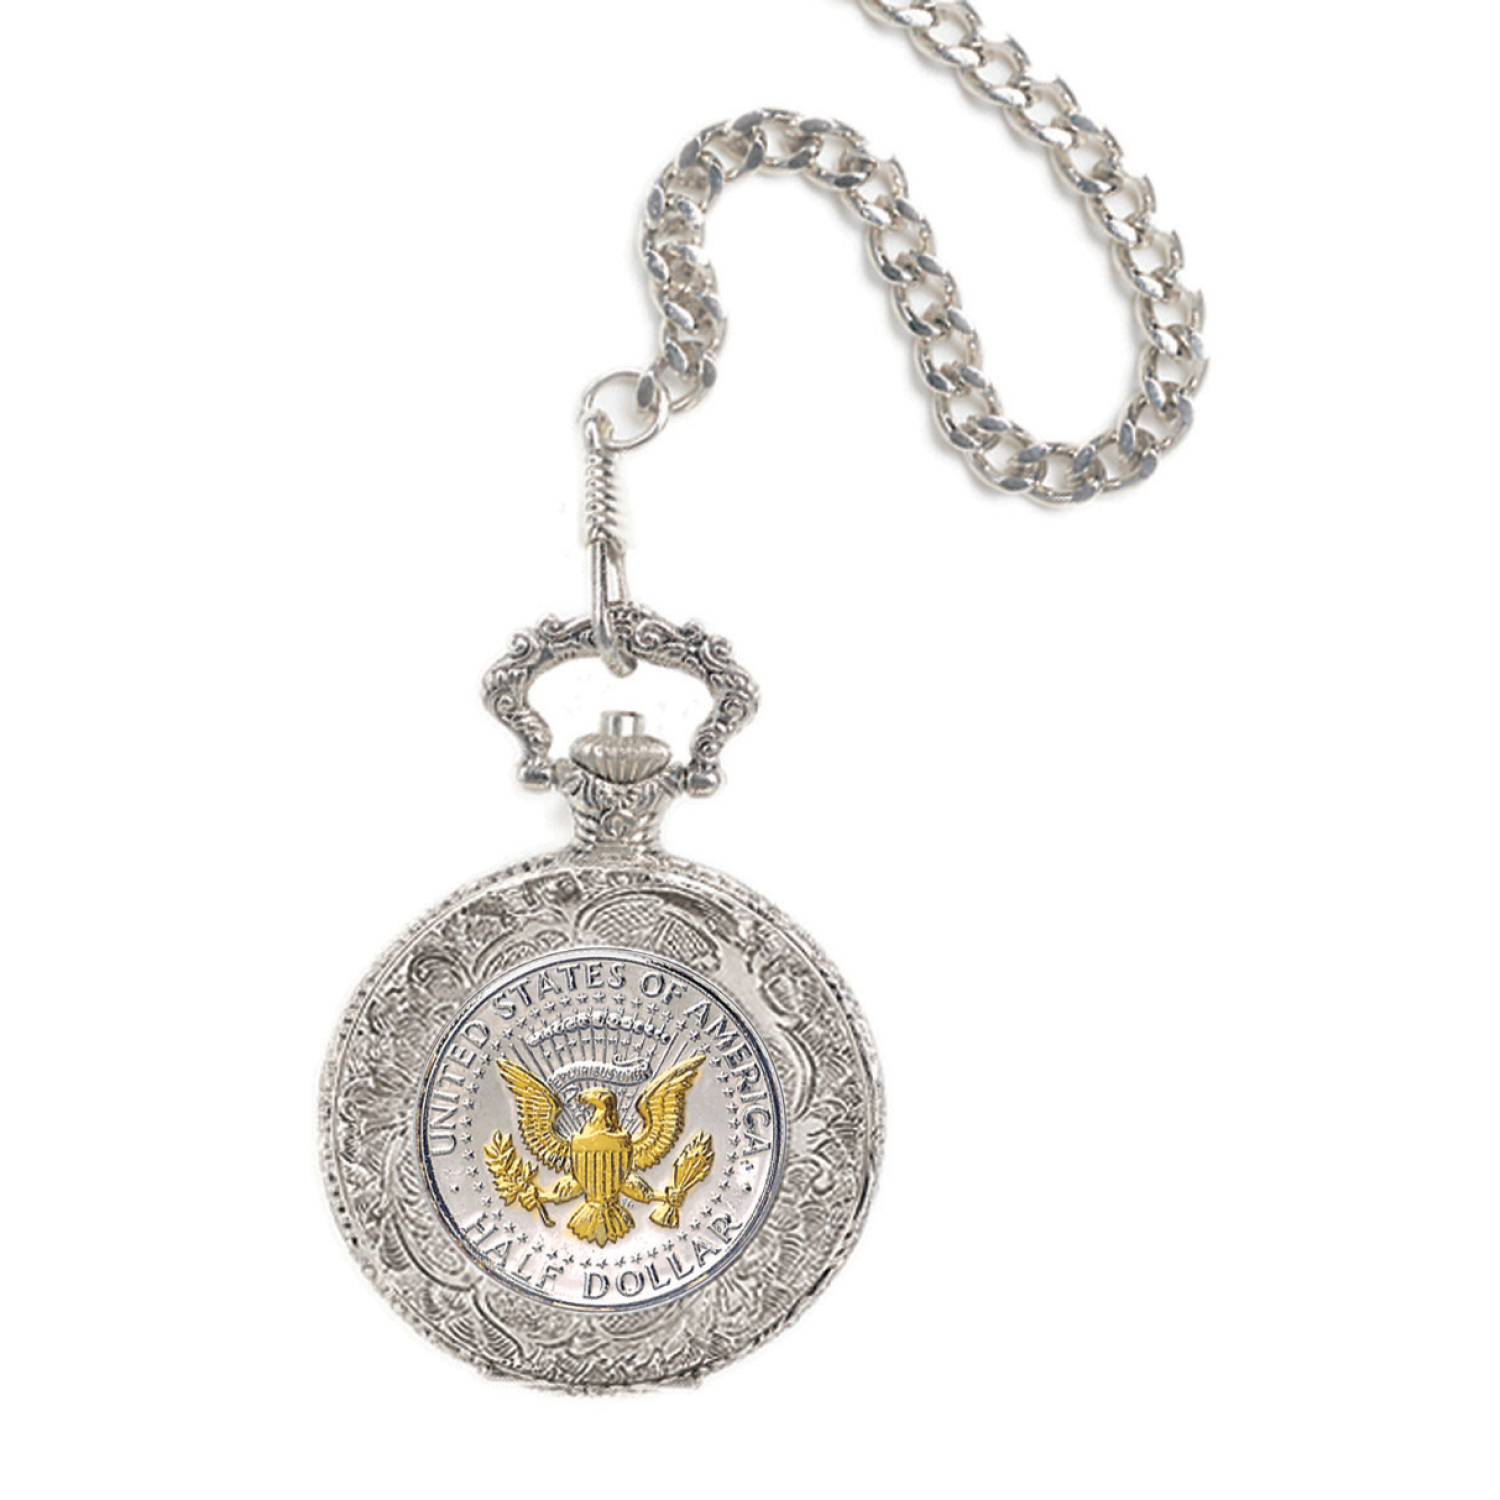 Selectively Gold-Layered Presidential Seal Coin Pocket Watch